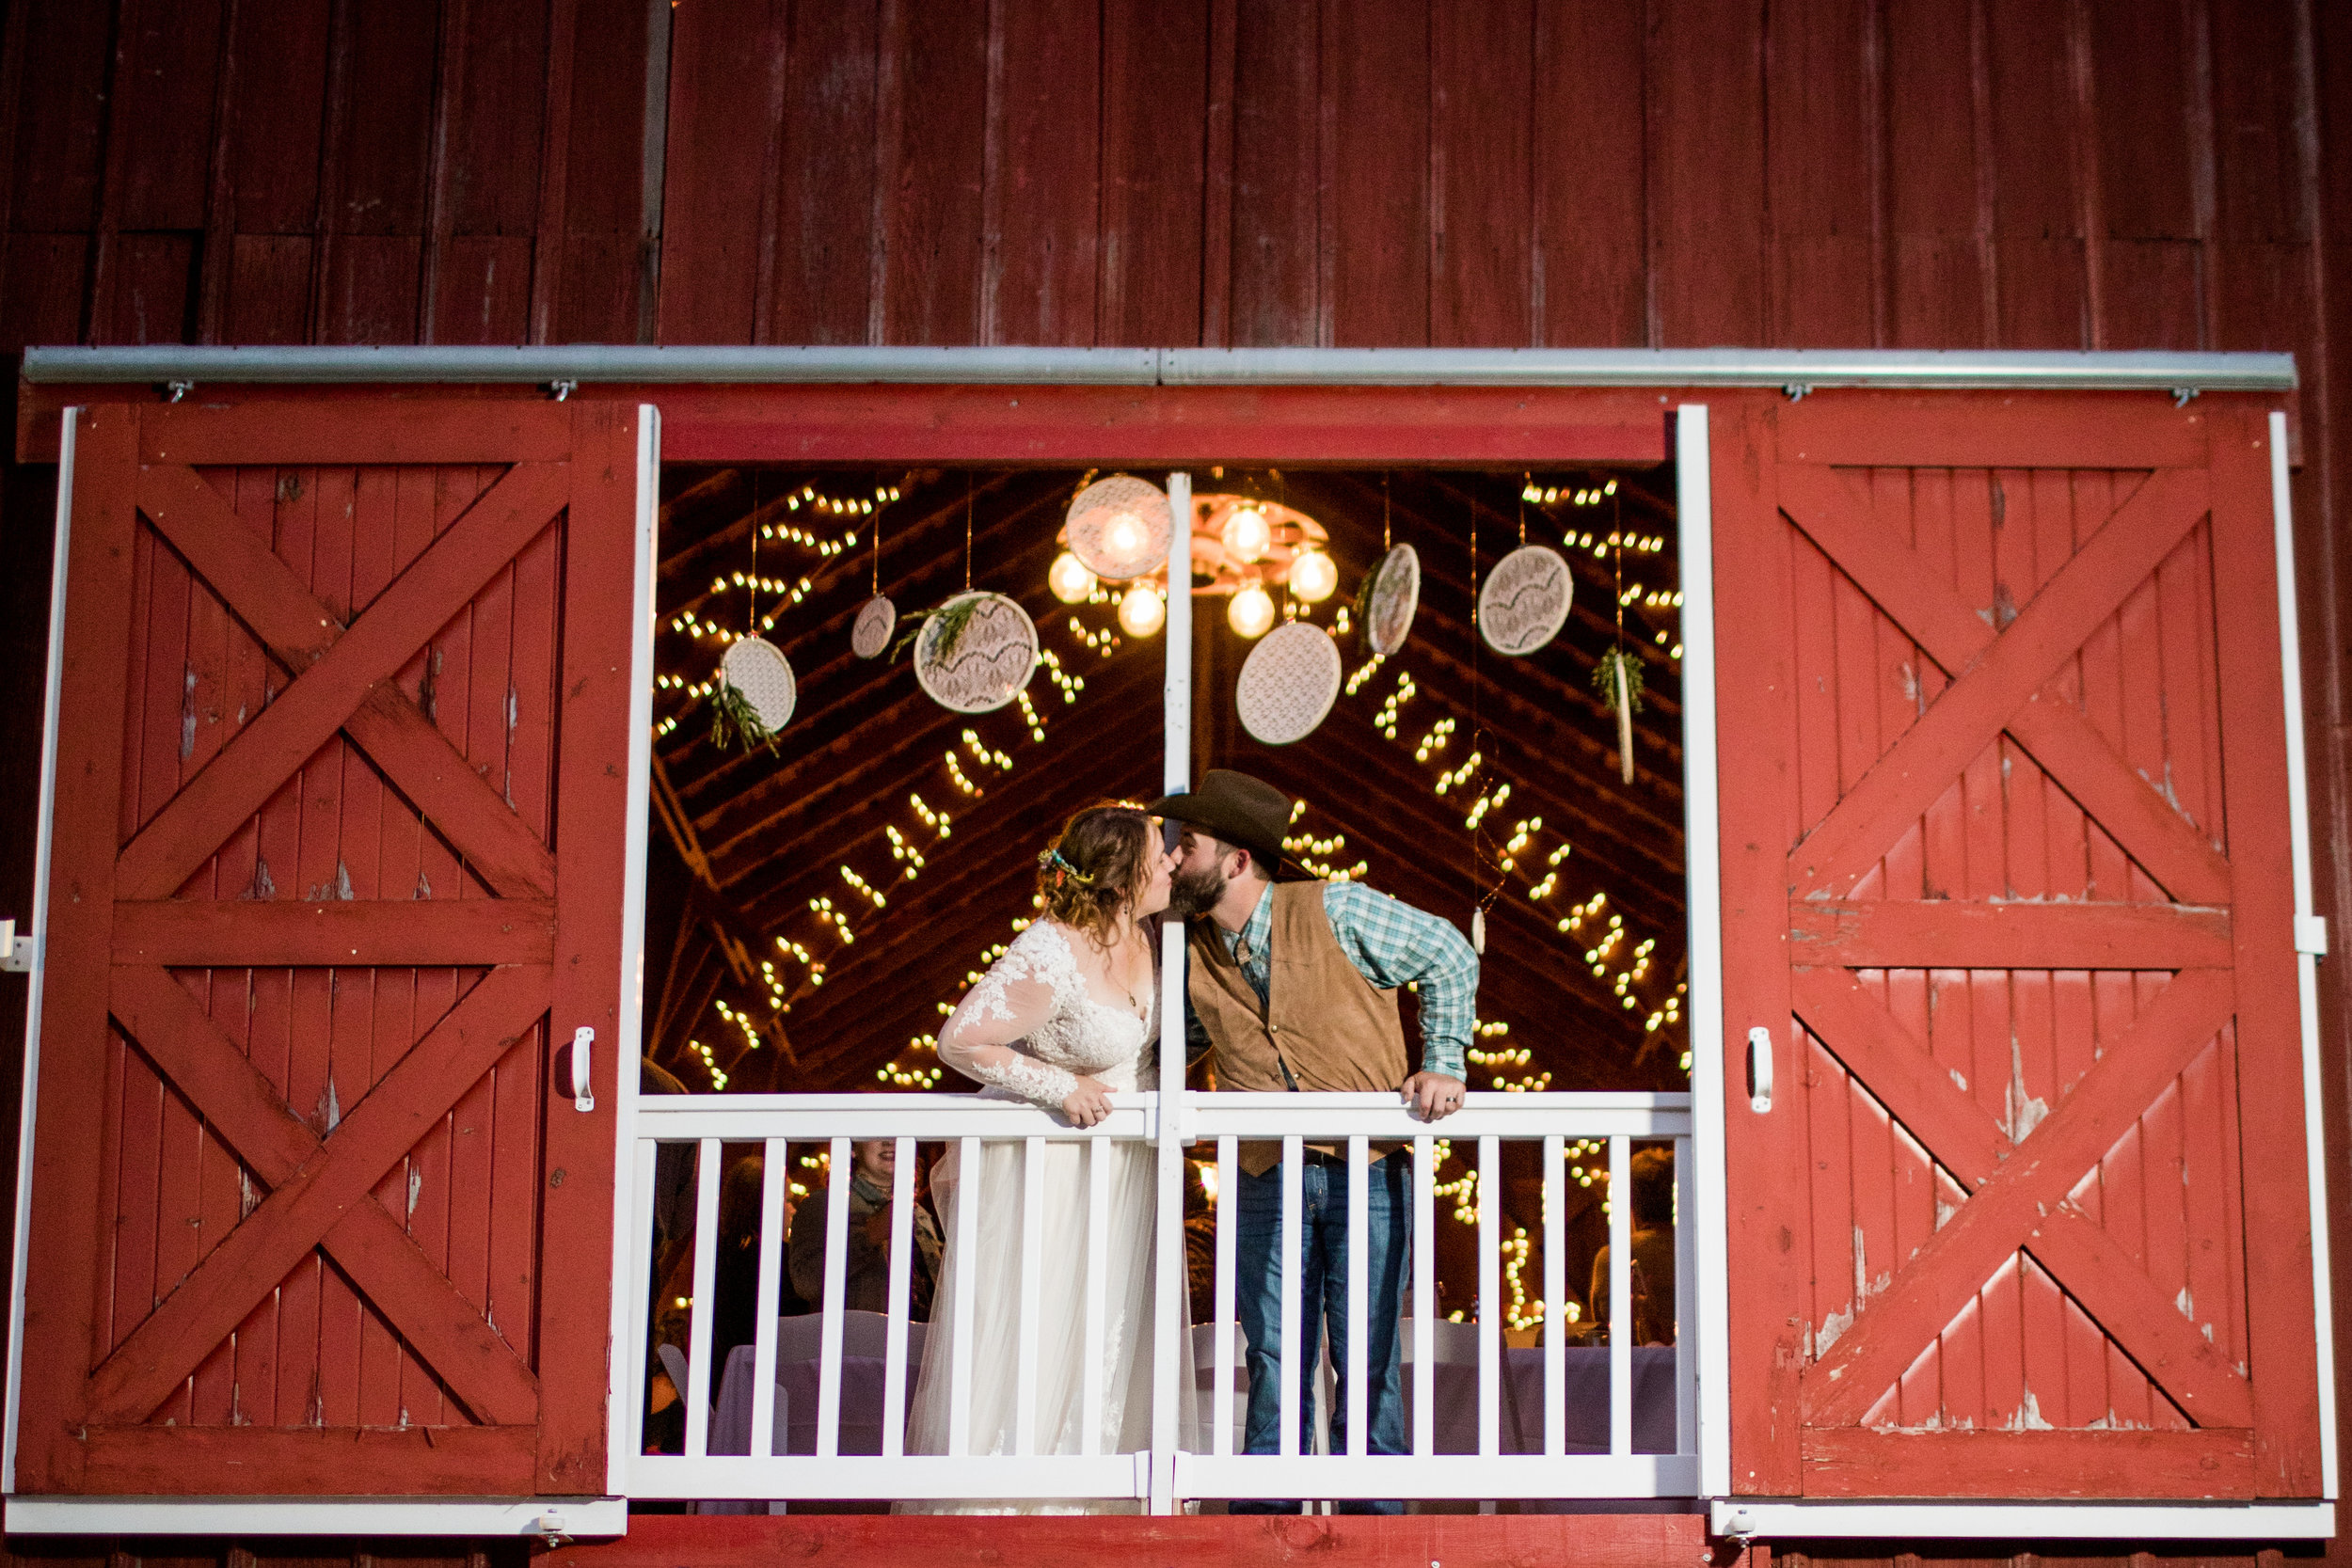 Bride and Groom in Barn Window